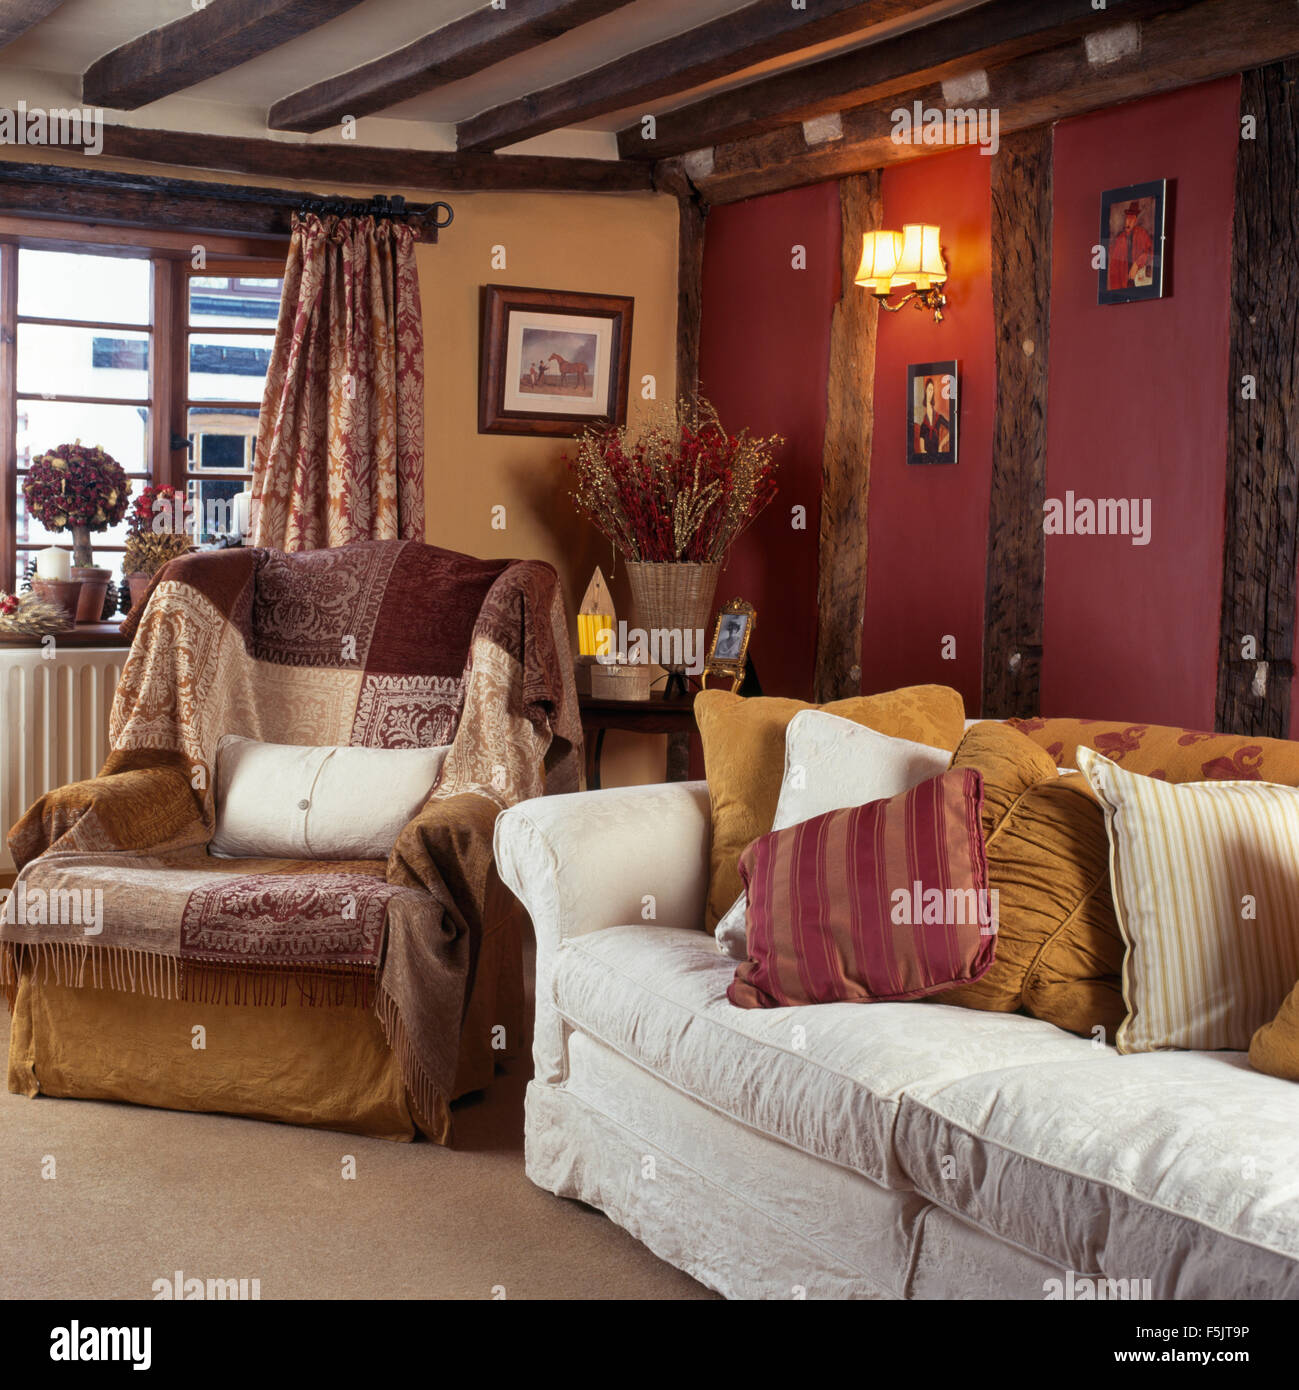 Patterned Throws On Armchair In Dark Nineties Cottage Living Room